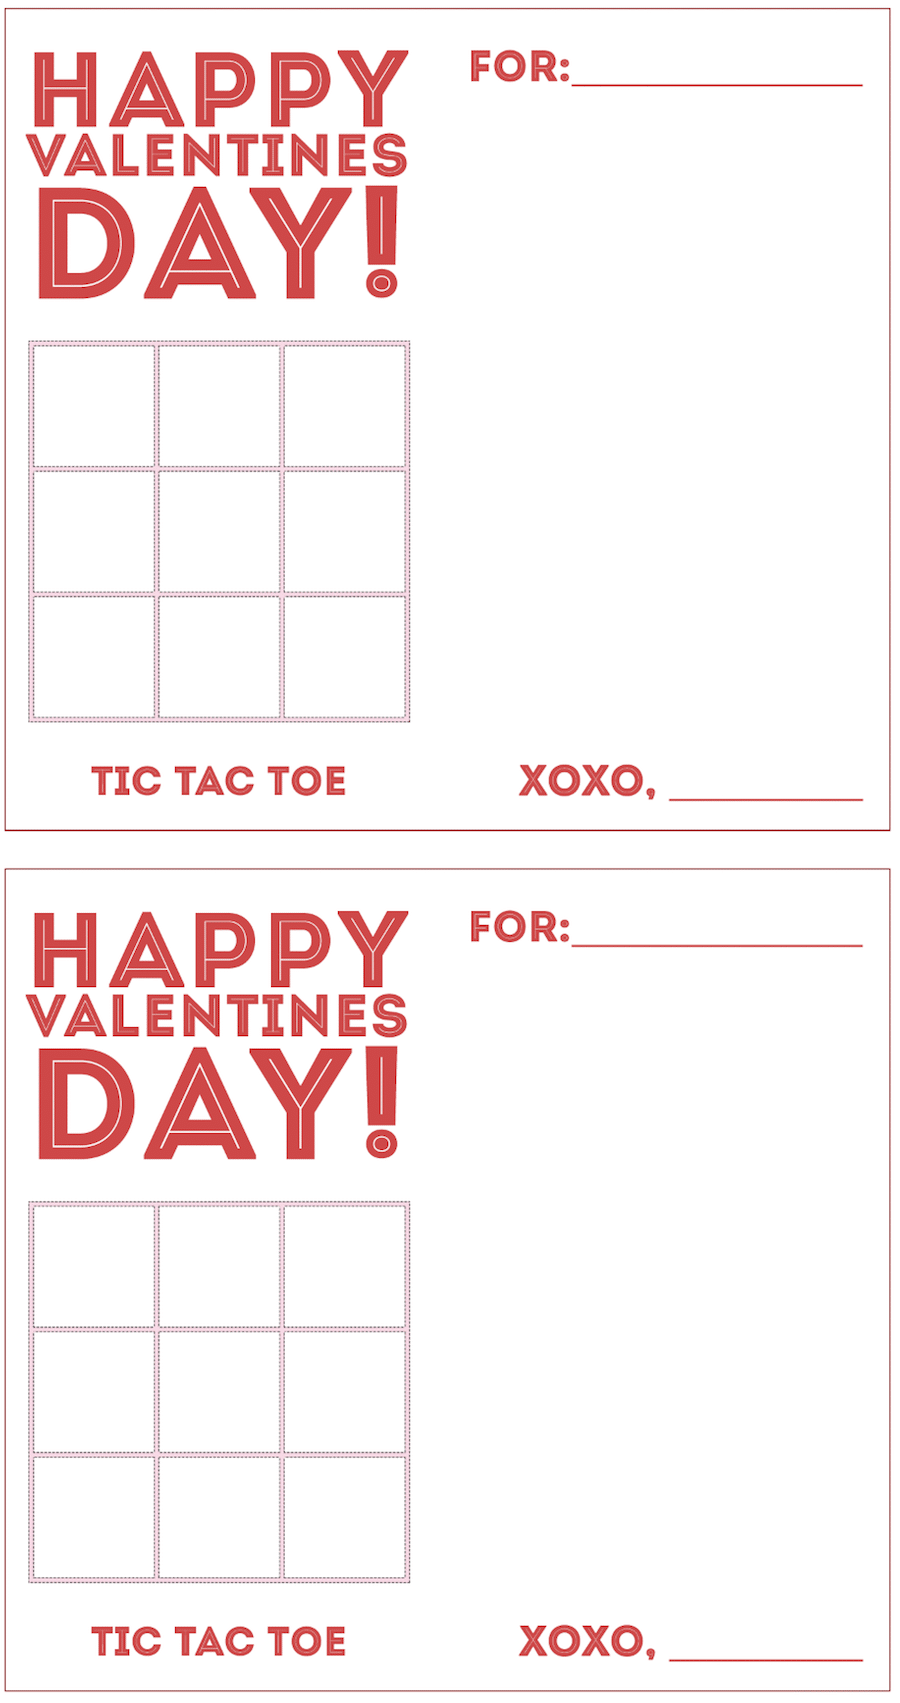 Make these Tic Tac Toe Valentine's Day Cards - great kids craft!